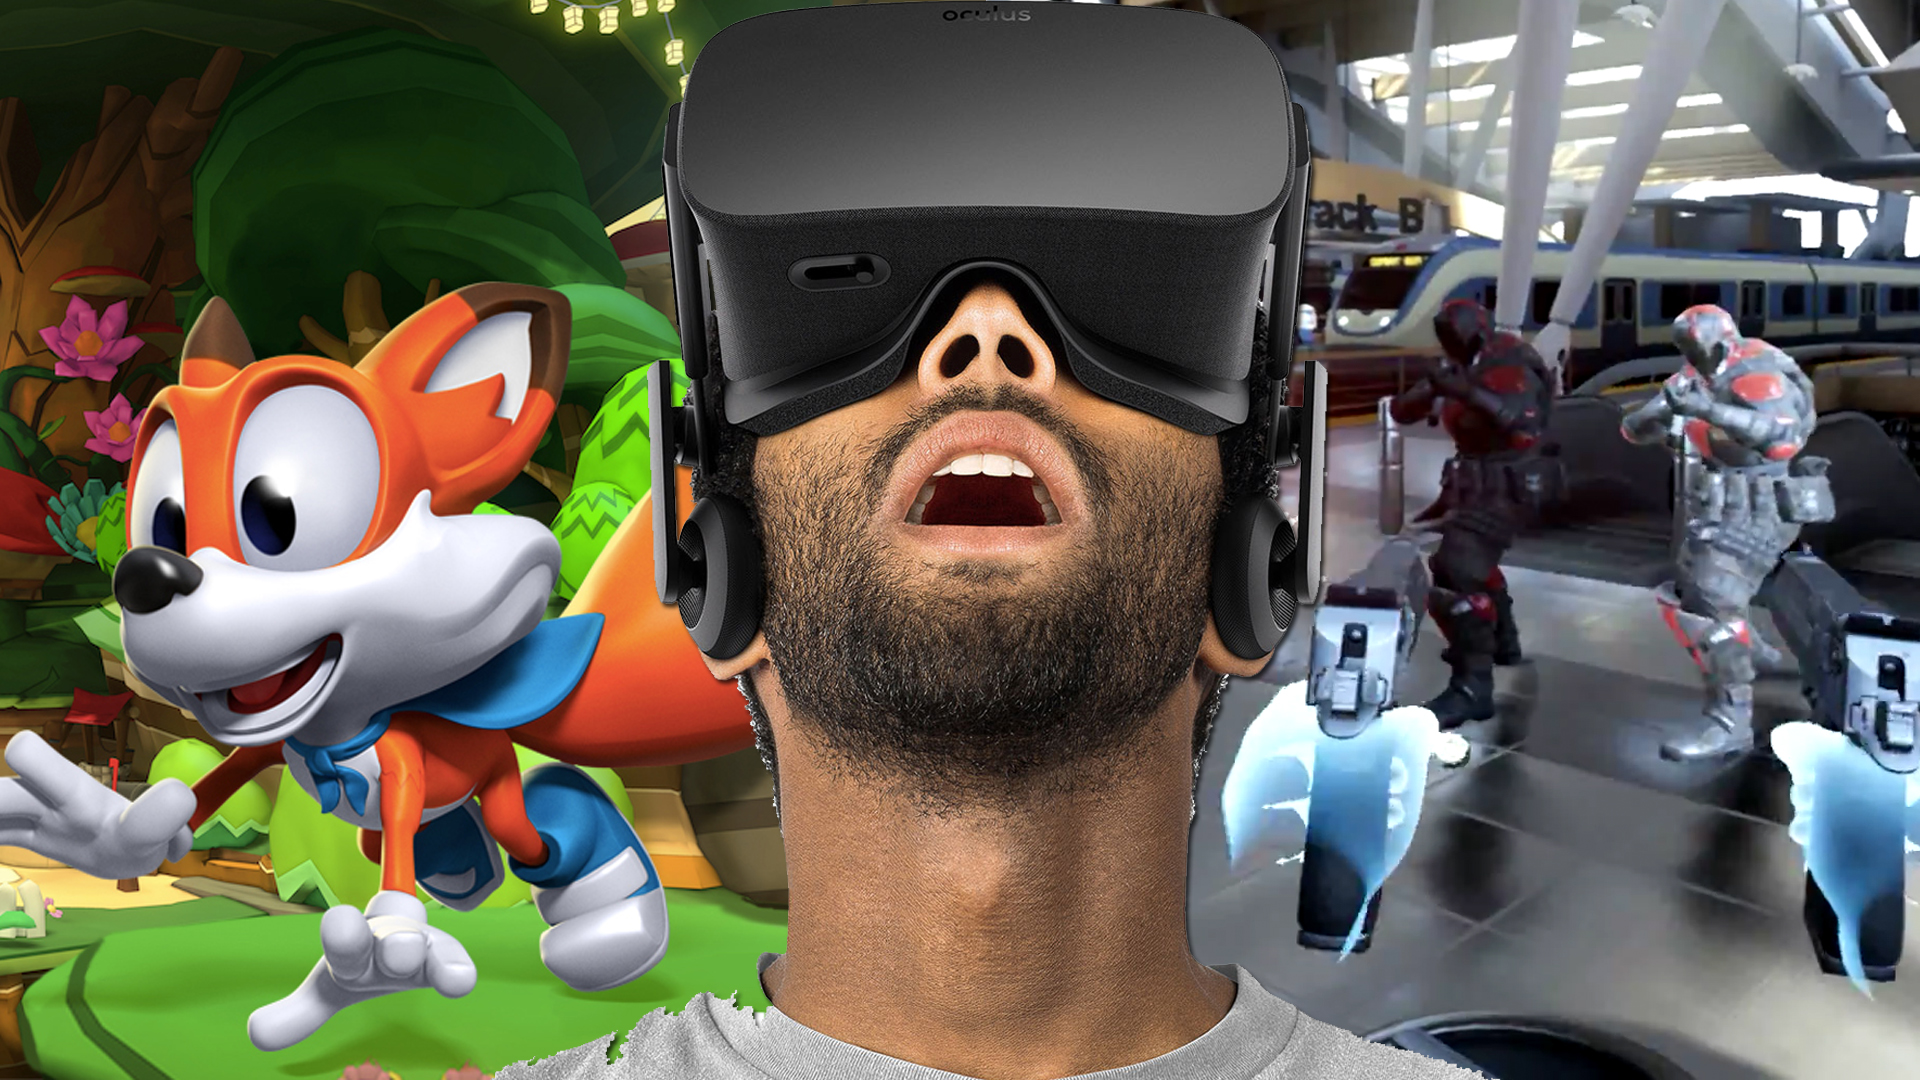 The upcoming Oculus Rift games of 2016 | GamesRadar+